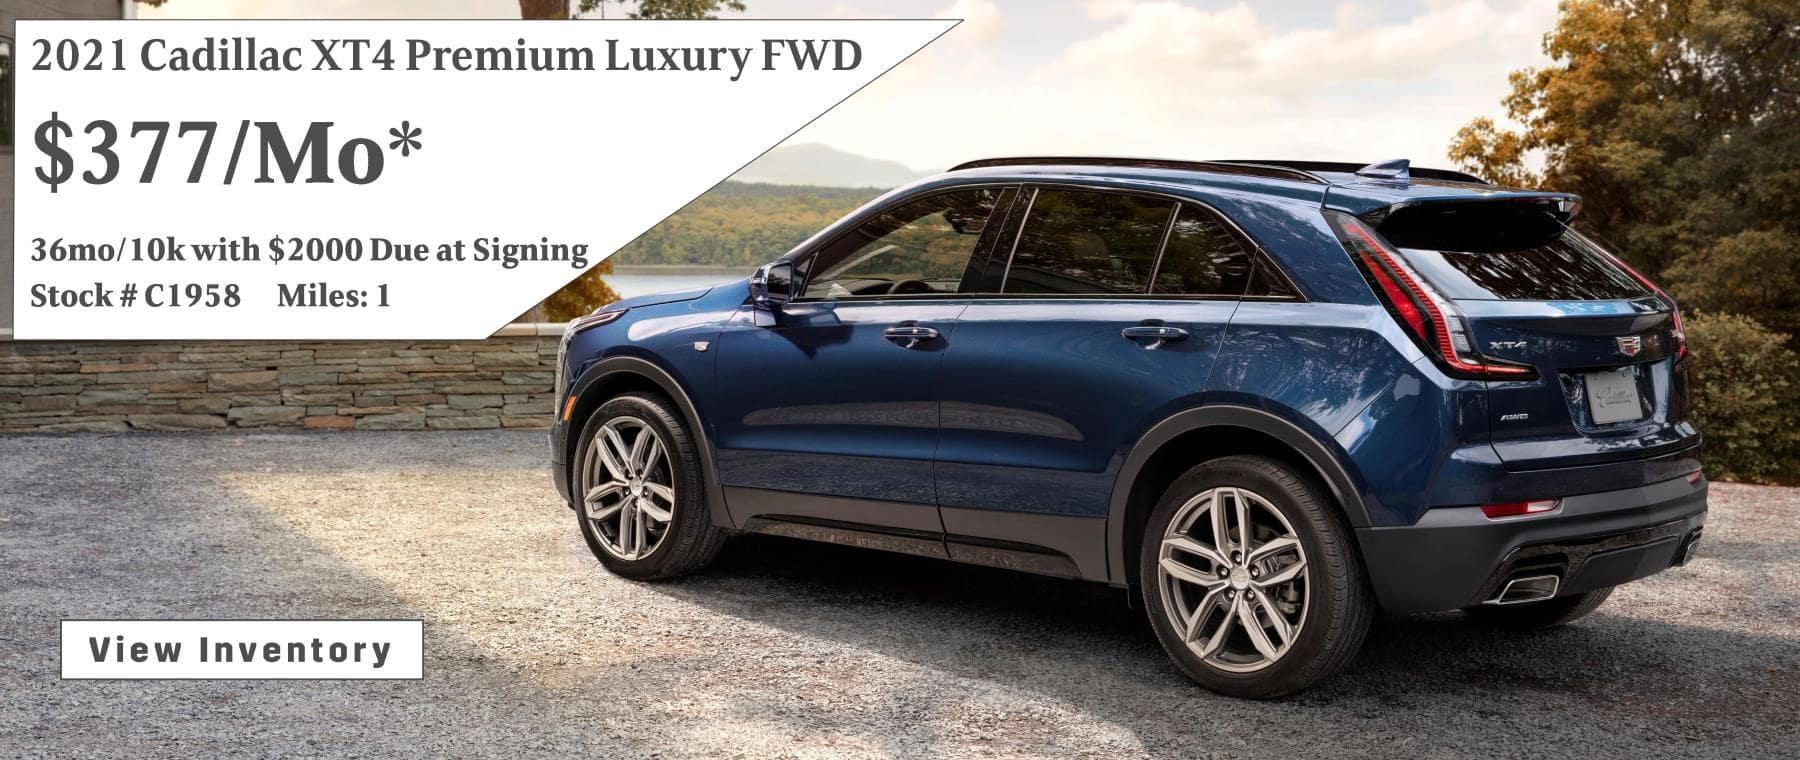 June Cadillac XT4 Lease Offer $377/mo*